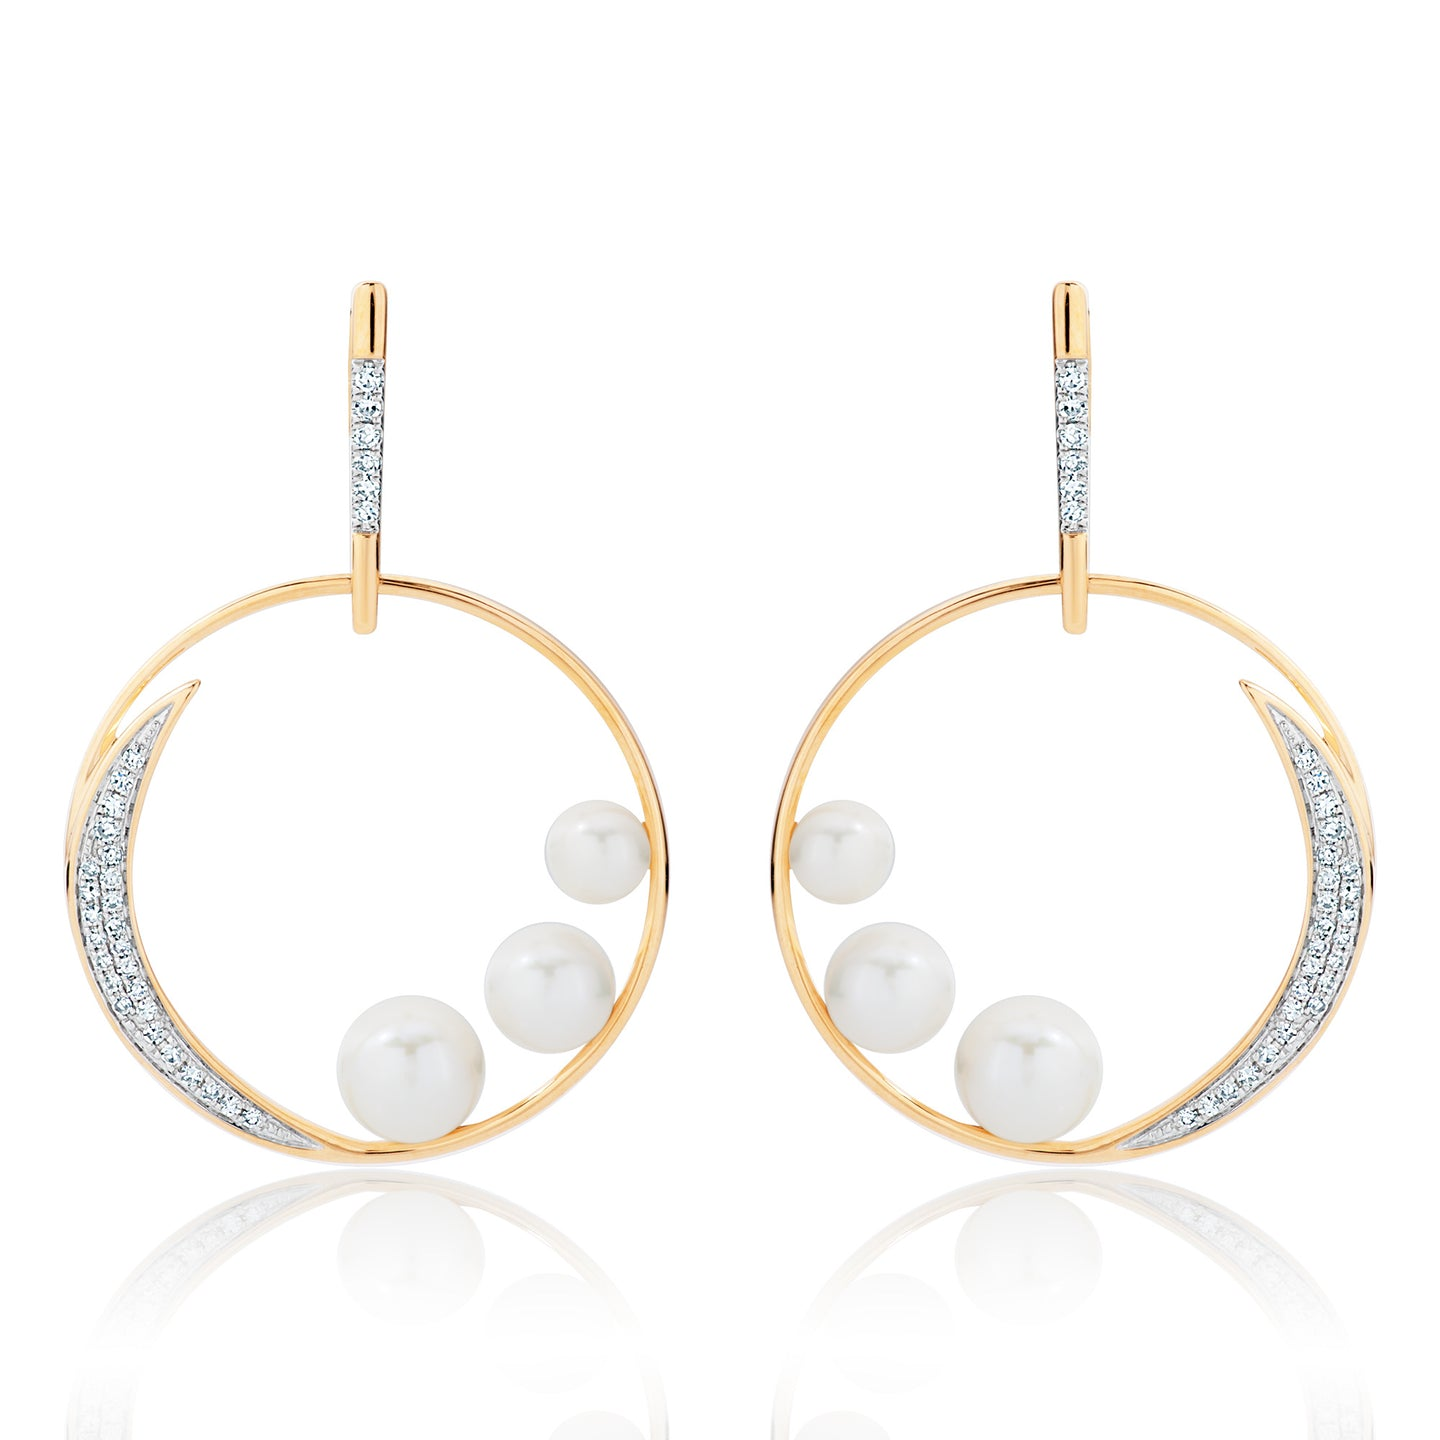 Diamond and Pearl Crescent Moon Earrings